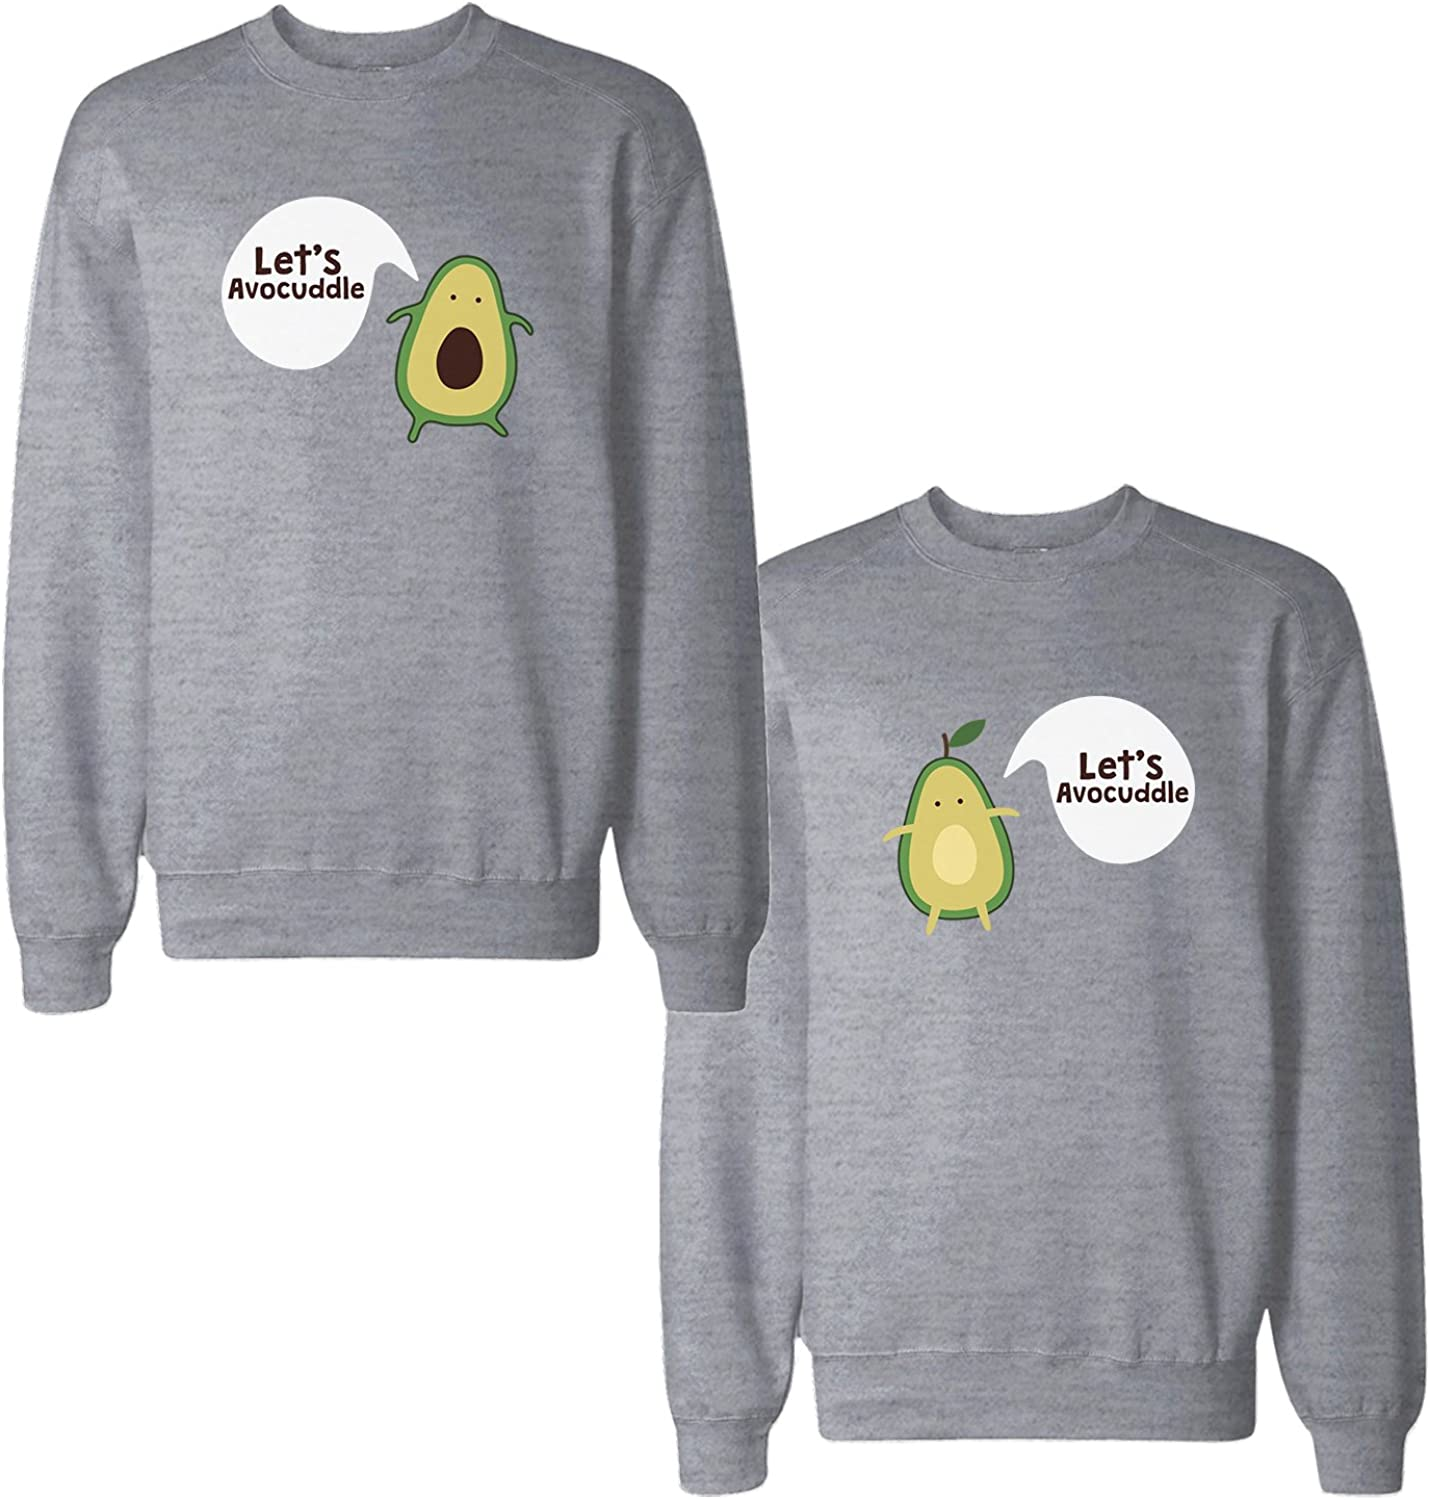 365 Printing Lets Avocuddle Couple Sweatshirts Cute Matching Gifts for Christmas